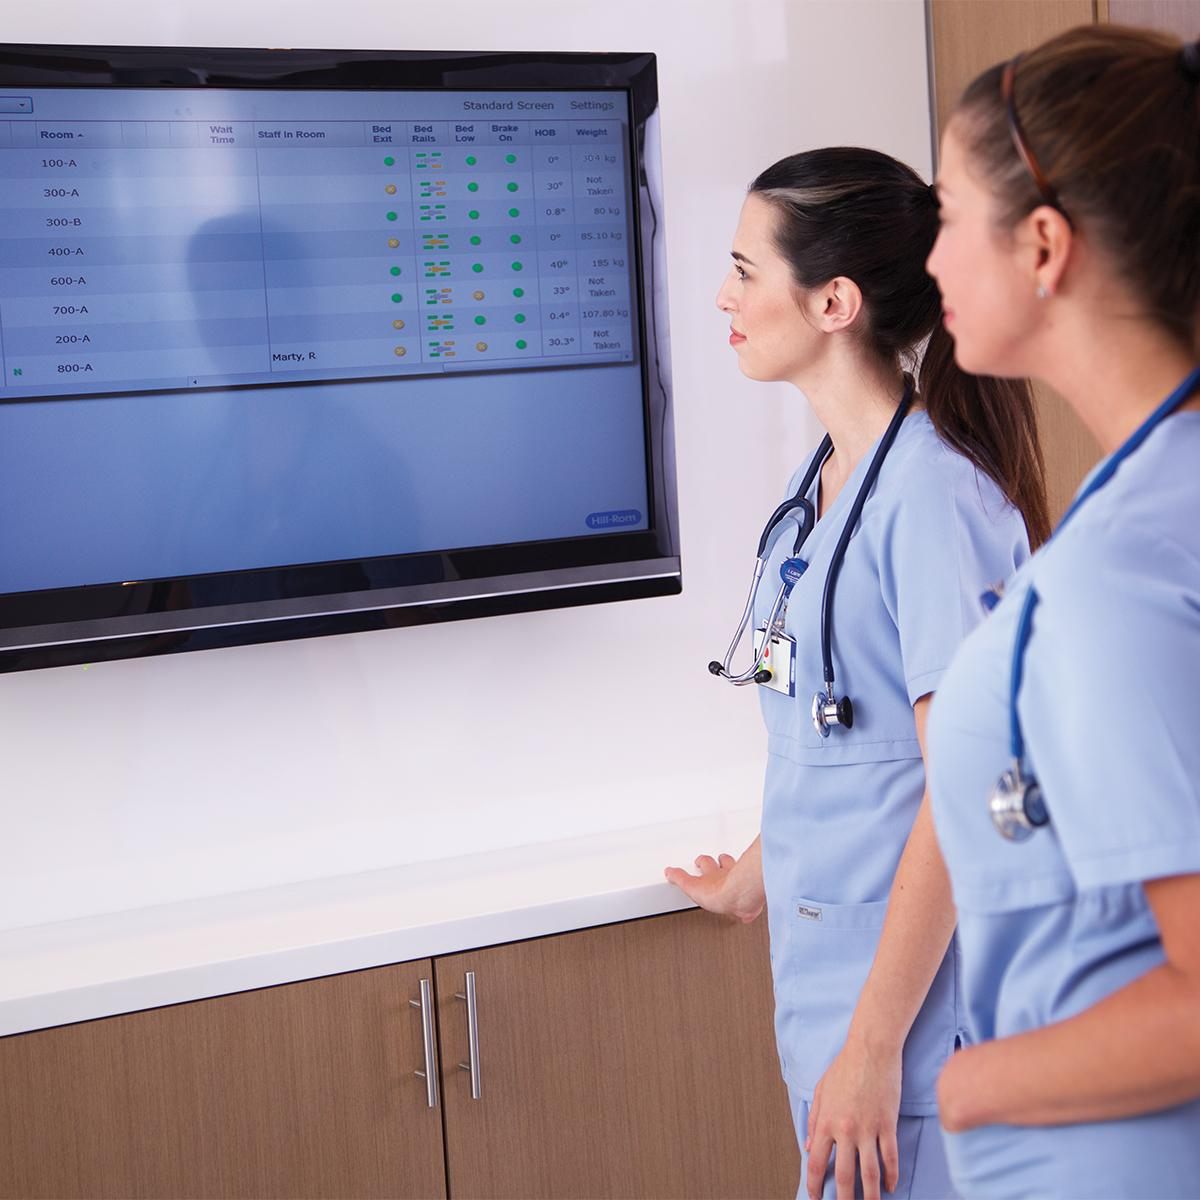 Two clinicians in blue scrubs review patient status data on a large screen in a hospital hallway